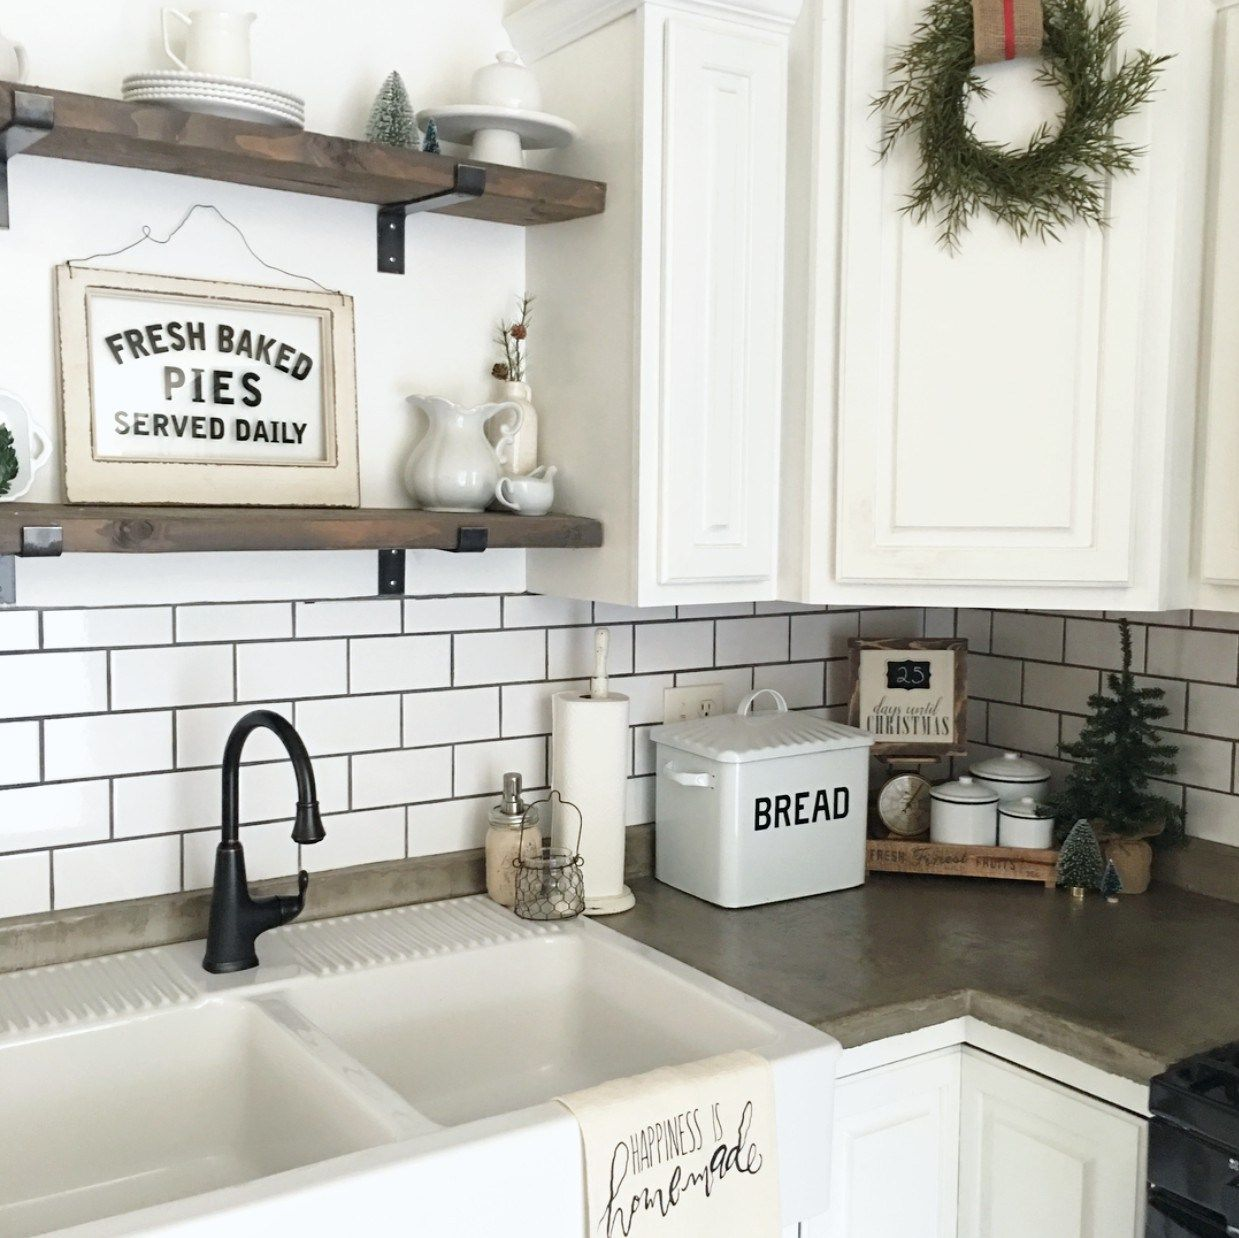 6 Kitchen Backsplash Ideas That Will Transform Your Space: The Little White Farmhouse Blog